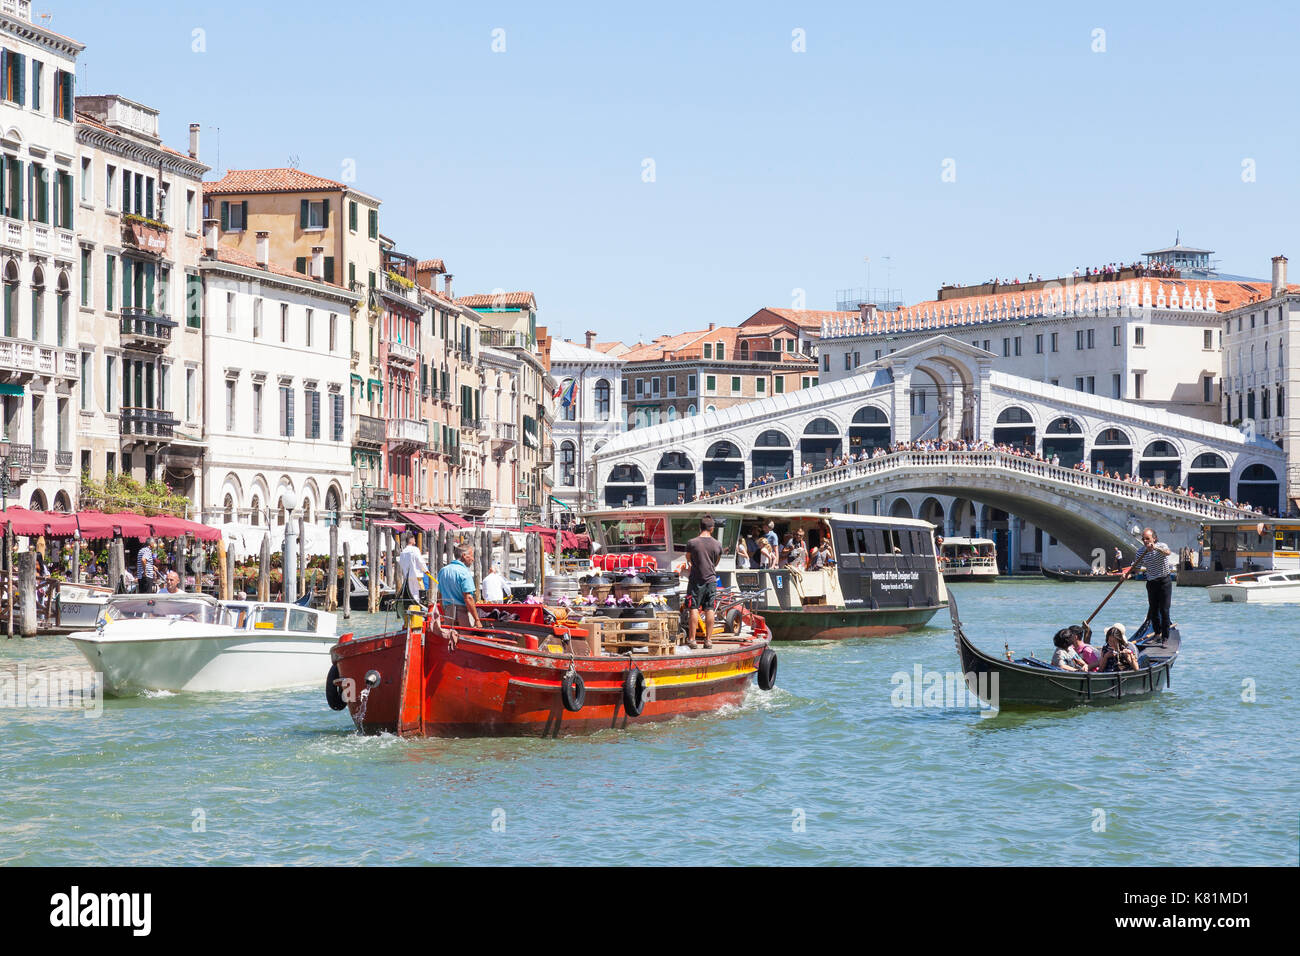 Busy boat traffic on the Grand Canal below the Rialto Bridge, Venice, Italy with a gondolier rowing tourists in a gondola, water taxi, work barge tran - Stock Image